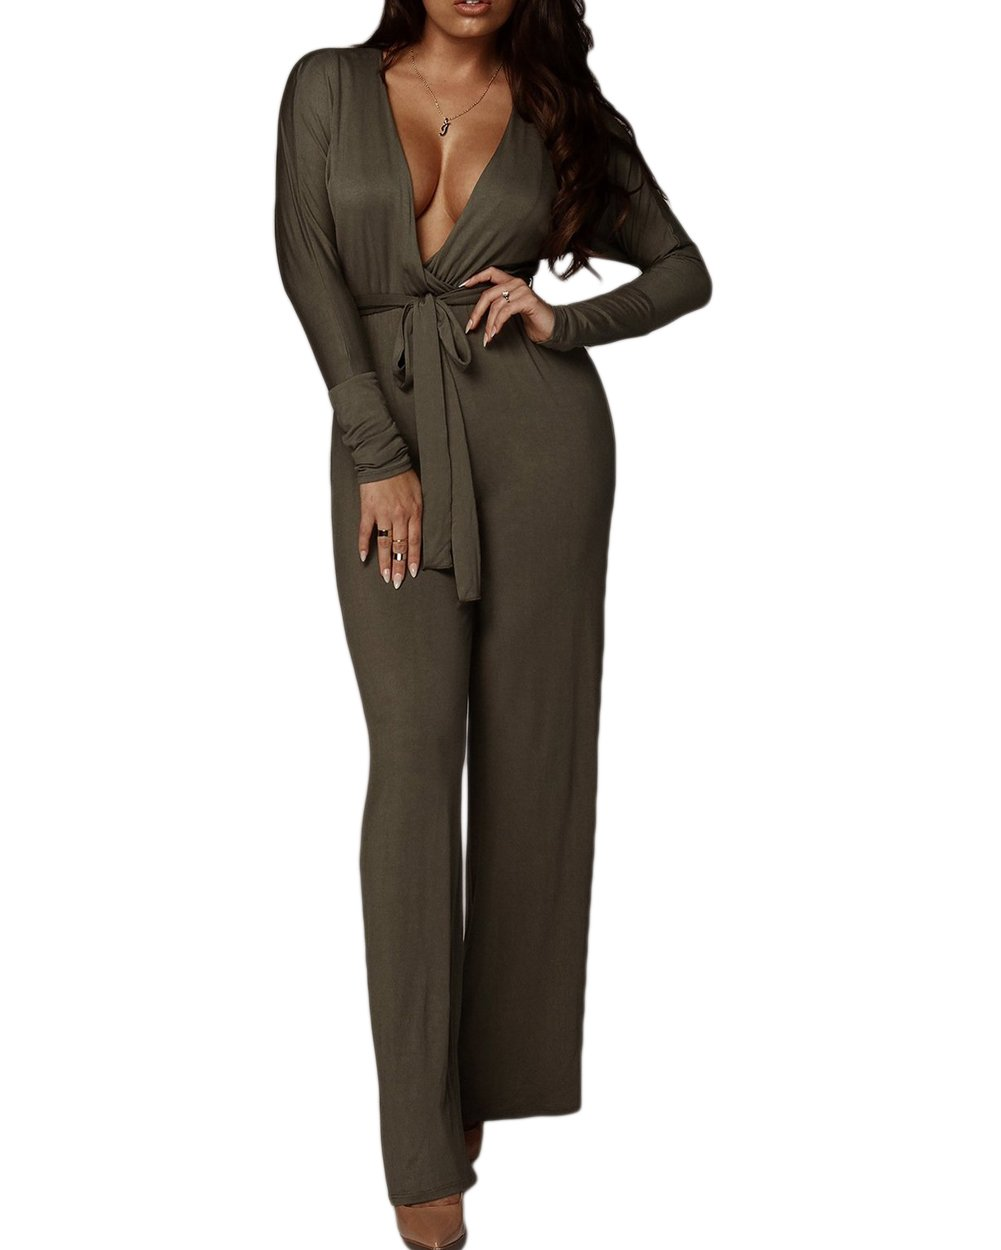 HAOAN Womens Deep V Neck Outfits Long Sleeve Wide Leg Pants Jumpsuit Rompers Belt